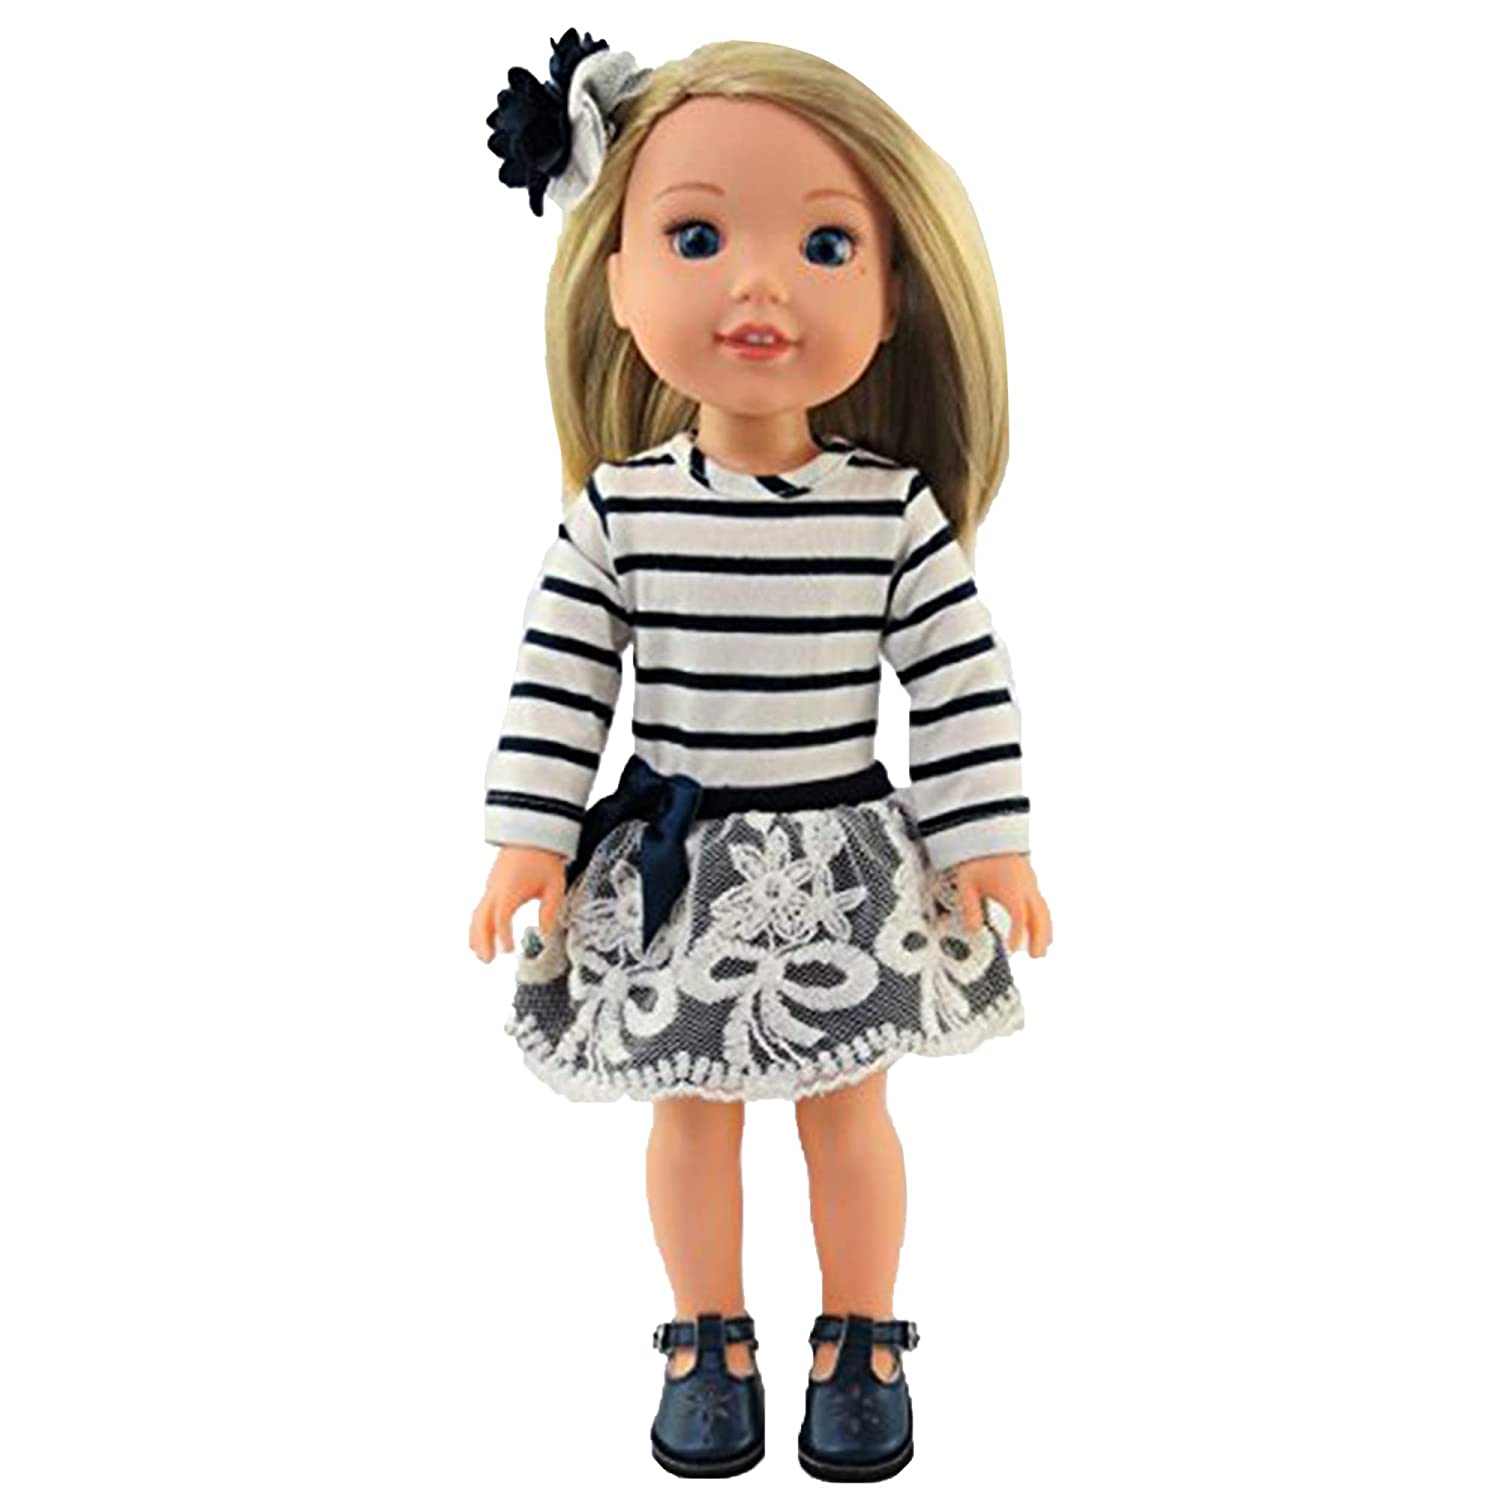 Navy and White Stripe Dress 14 Inch Doll Clothing Fits 14 Inch Wellie Wisher Dolls